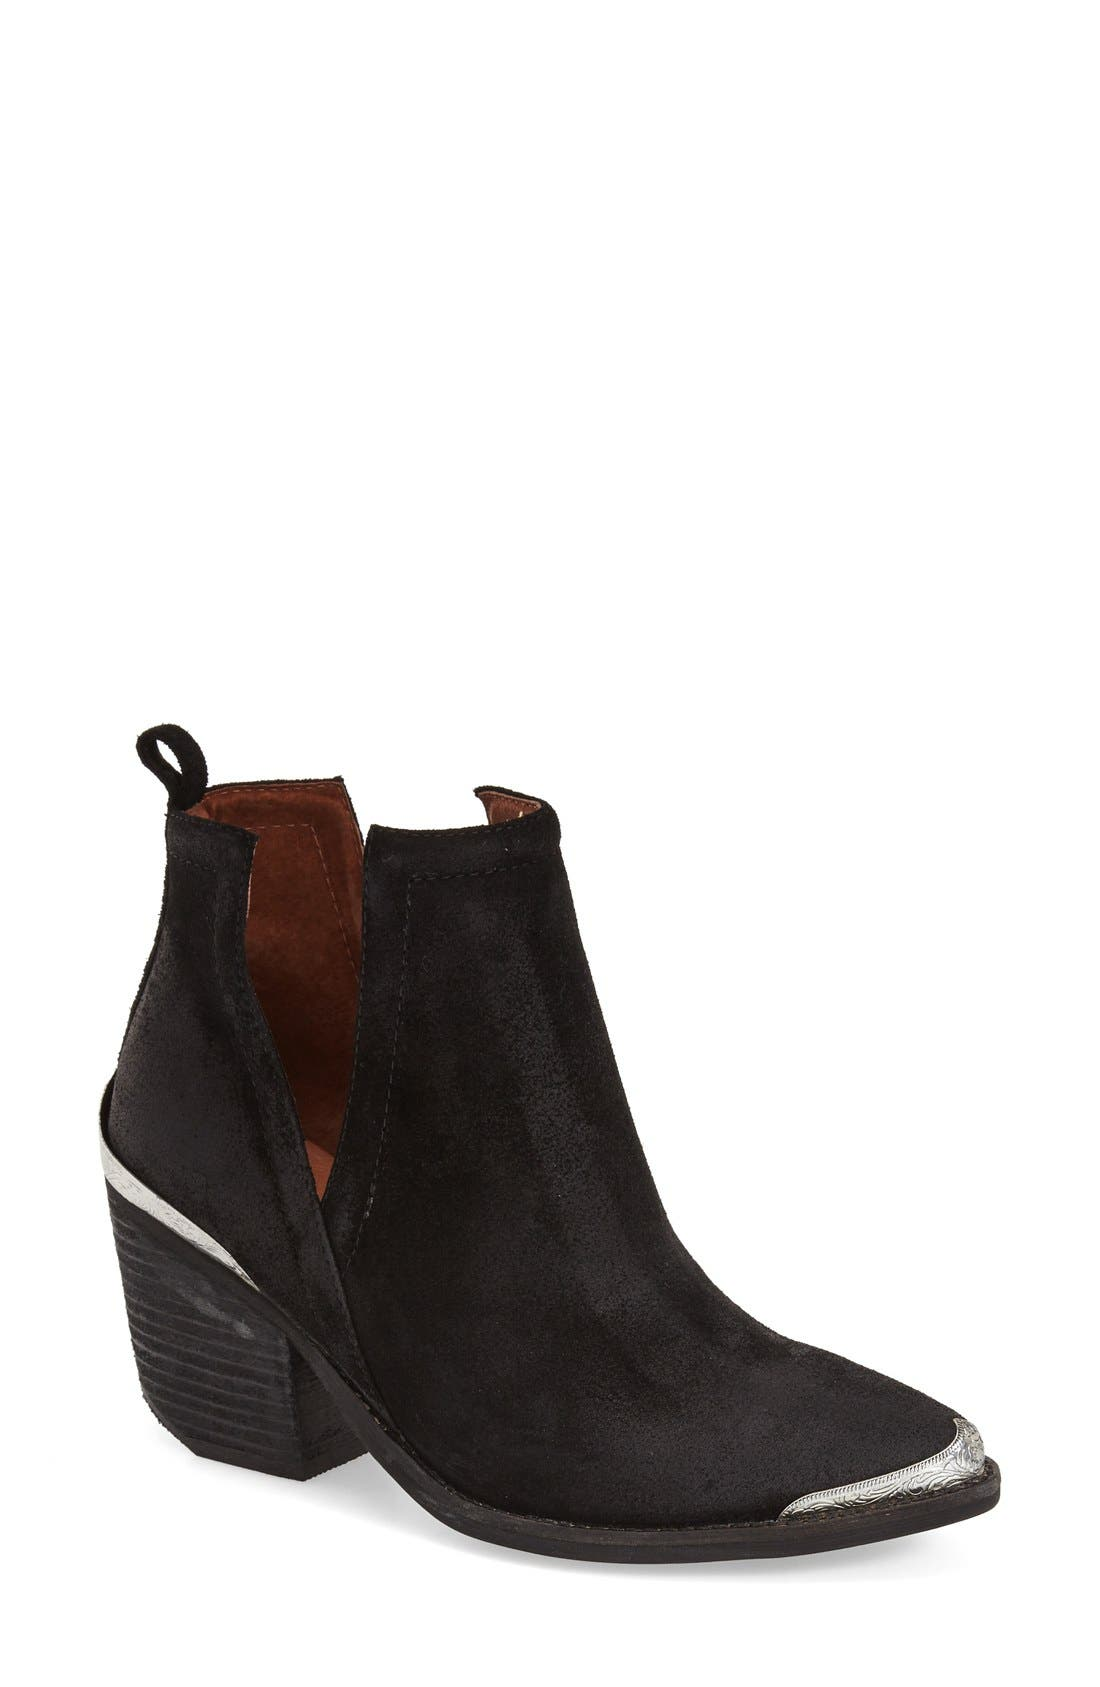 Women's Black Dress Boots, Boots for Women | Nordstrom